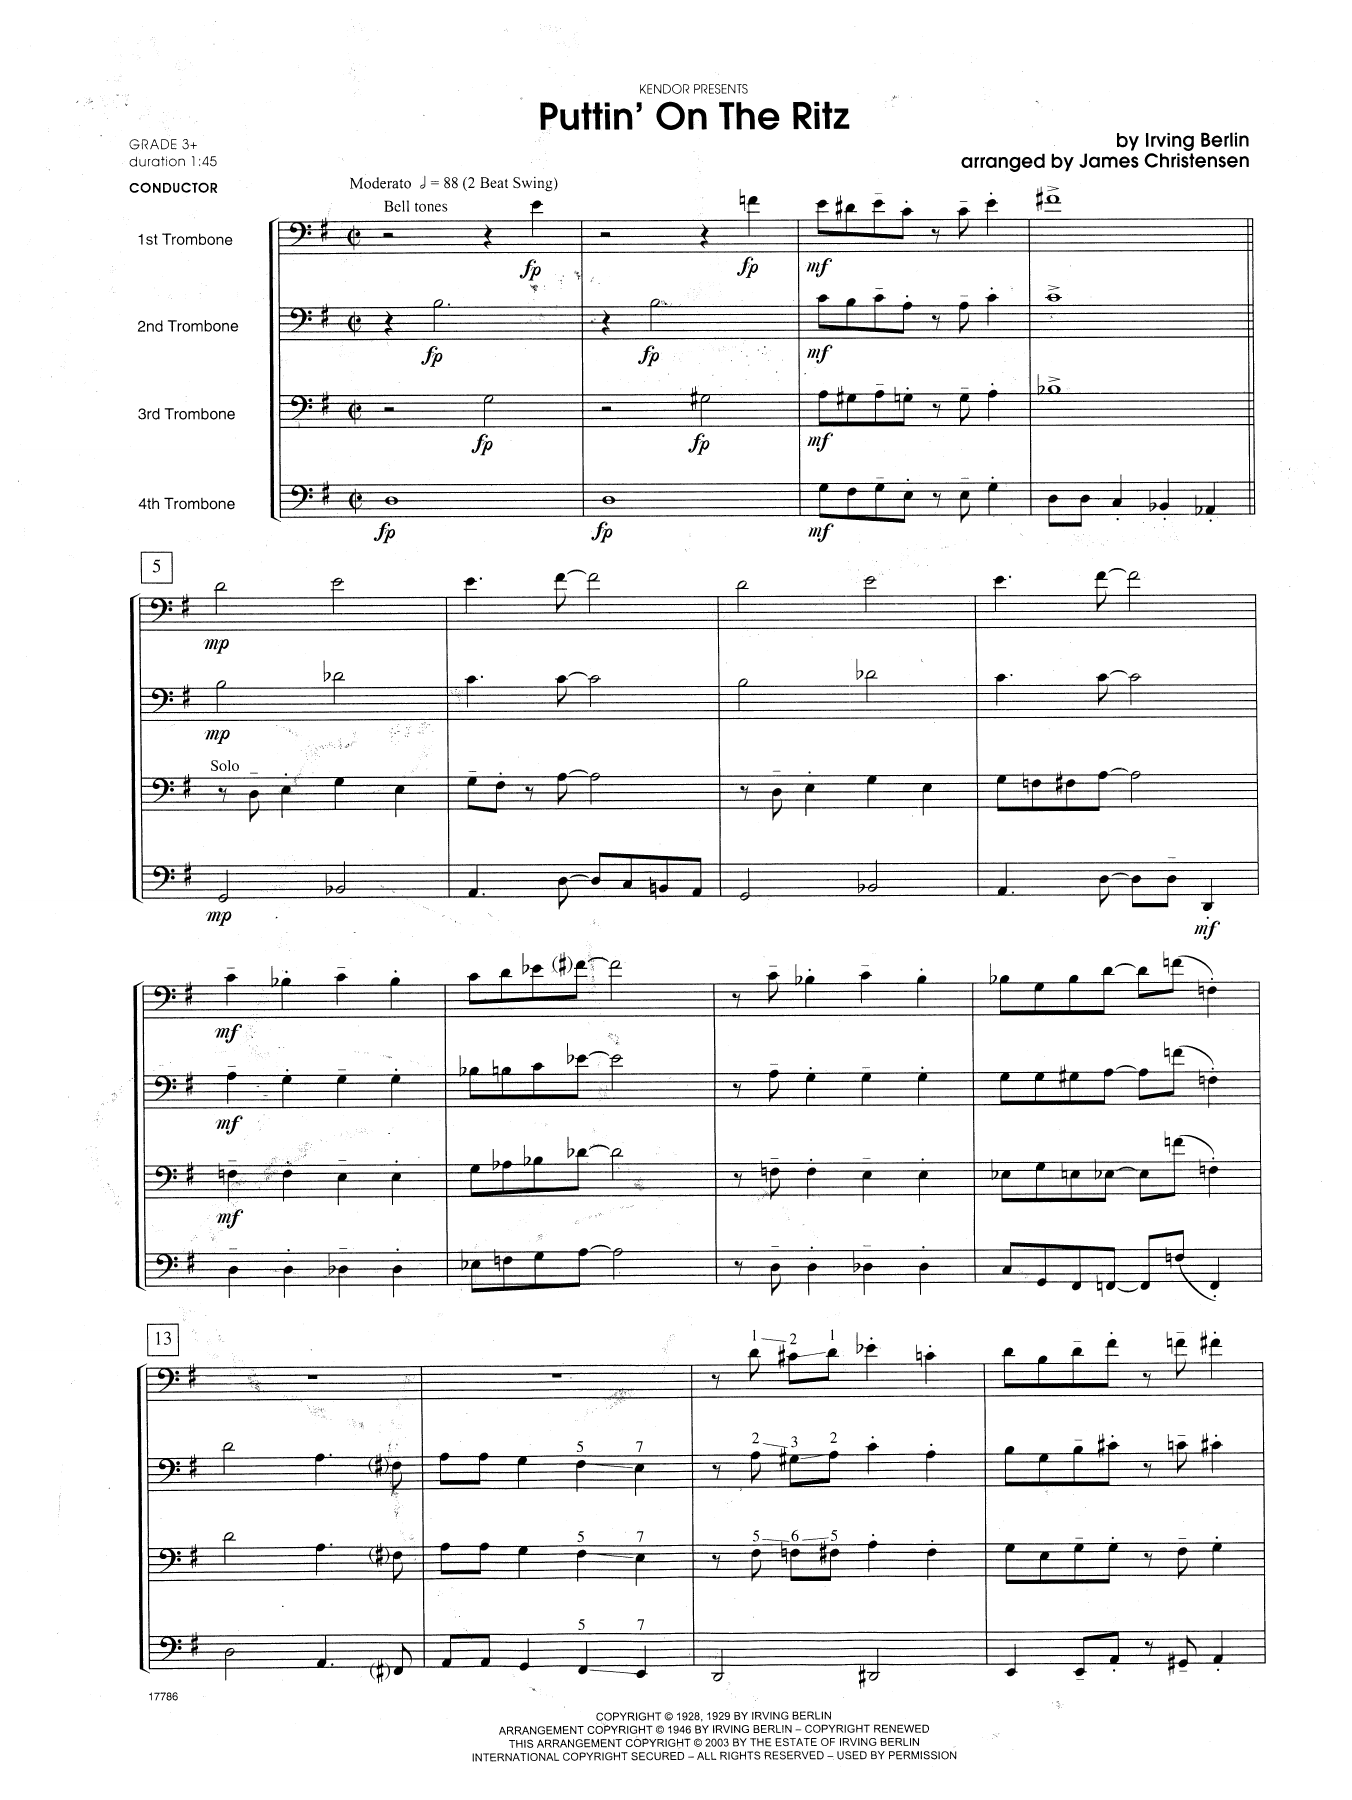 Puttin' on the Ritz - Full Score Sheet Music